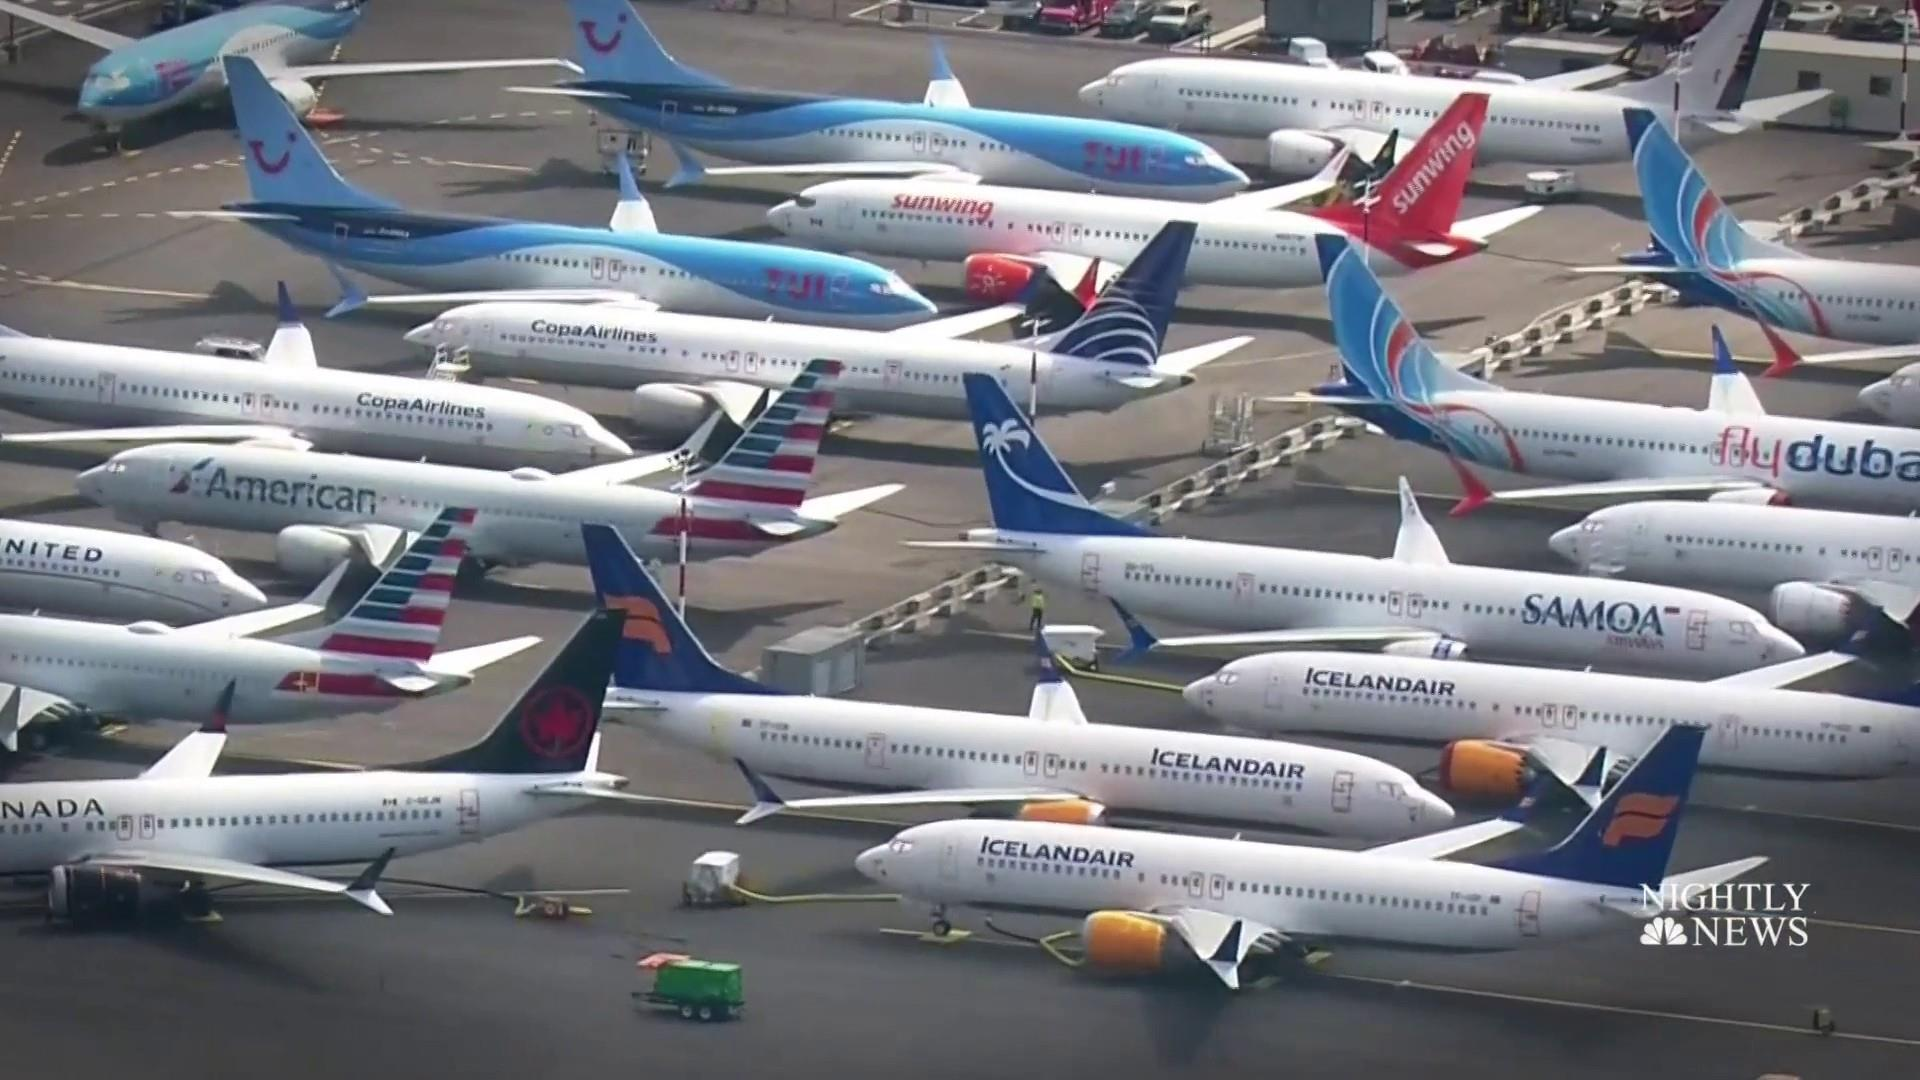 FAA warns some Boeing 737 jets may have faulty wing parts